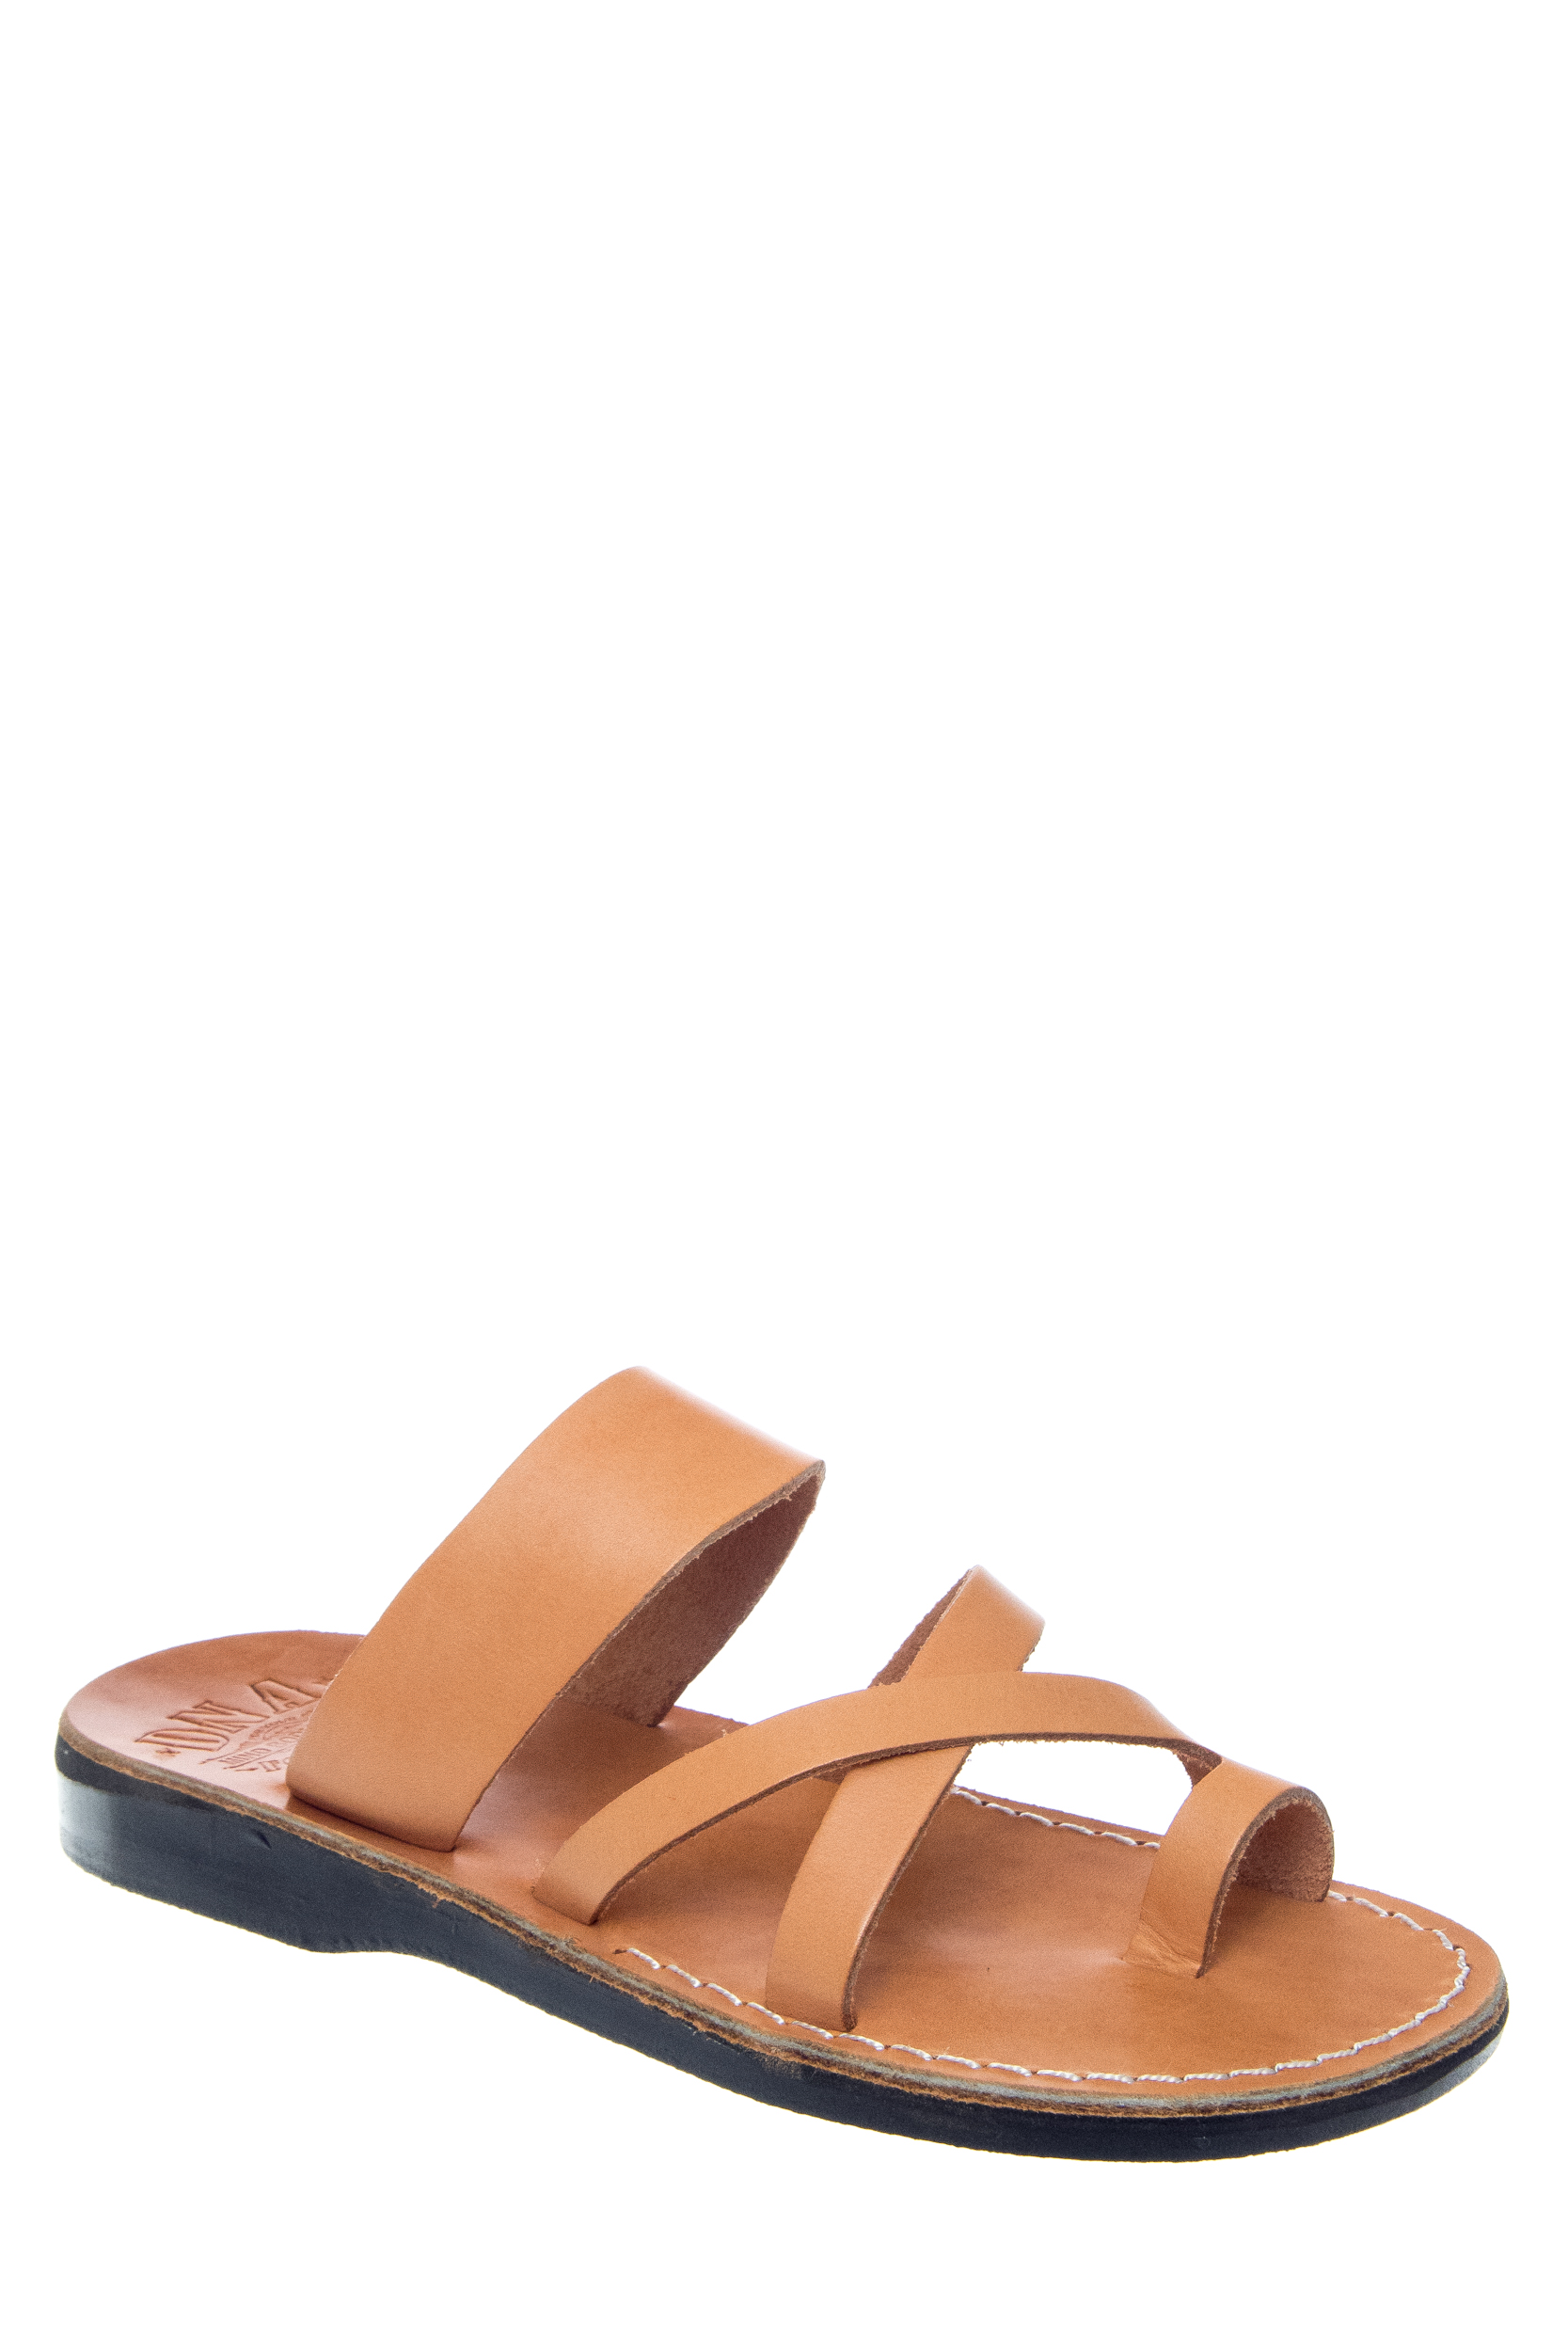 DNA Footwear x Jerusalem Good Shepherd Slip On Sandals - Camel